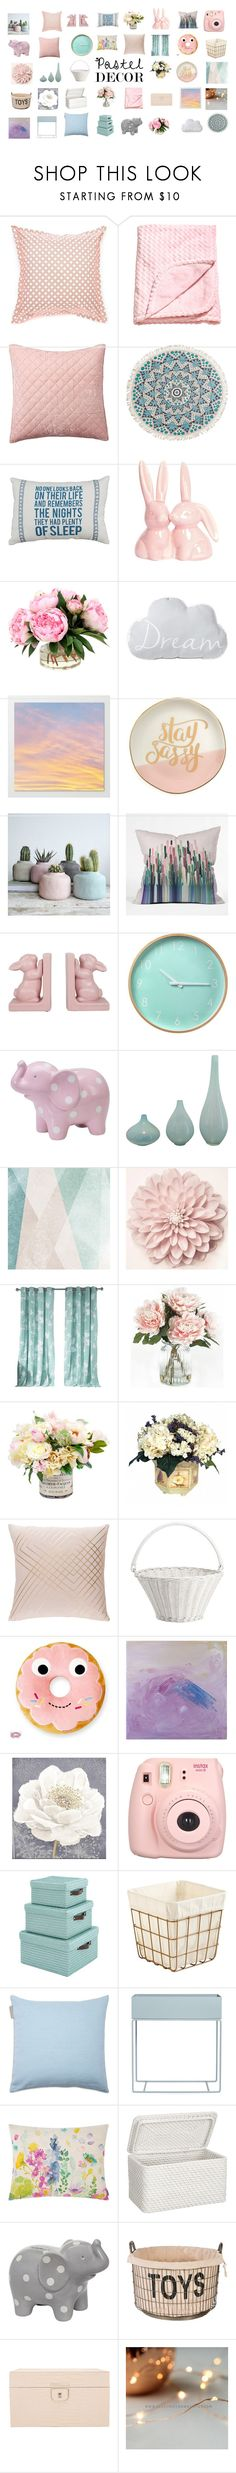 """""""Pastel Decor"""" by clothes10101 ❤ liked on Polyvore featuring interior, interiors, interior design, home, home decor, interior decorating, Jonathan Adler, Pottery Barn, Billabong and Slant"""